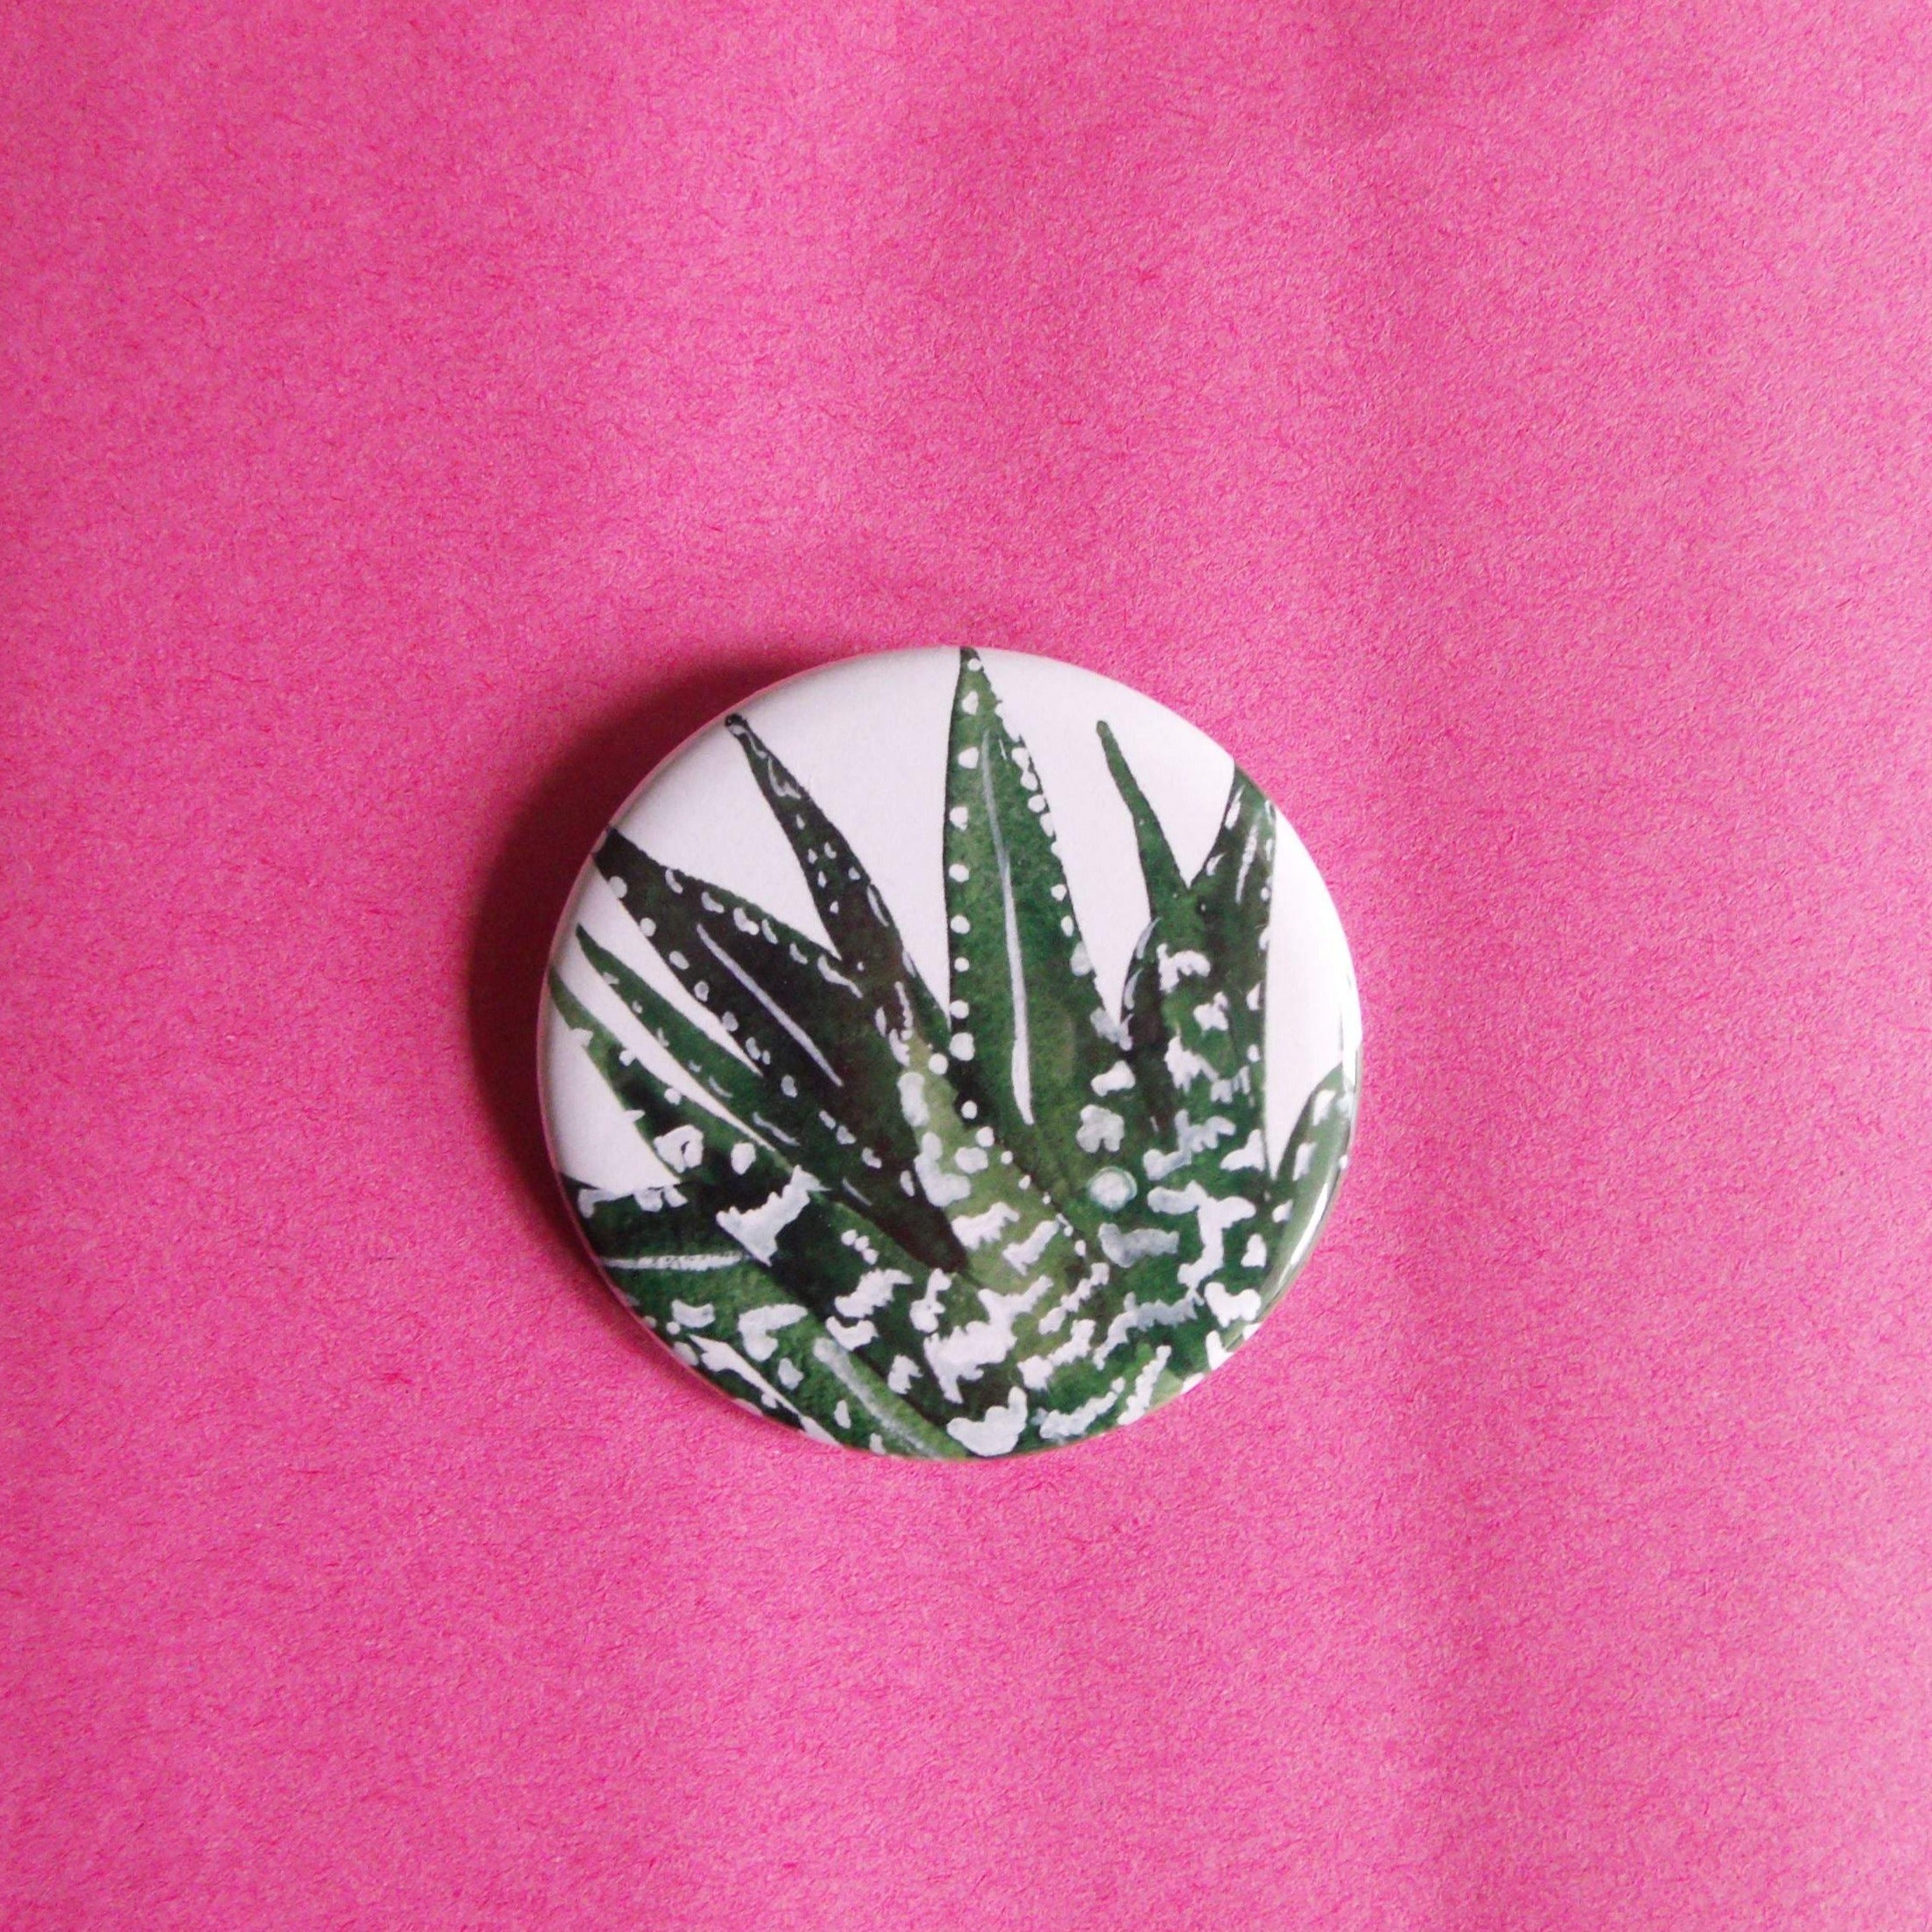 circular button badge with an illustration of an aloe vera plant on it.